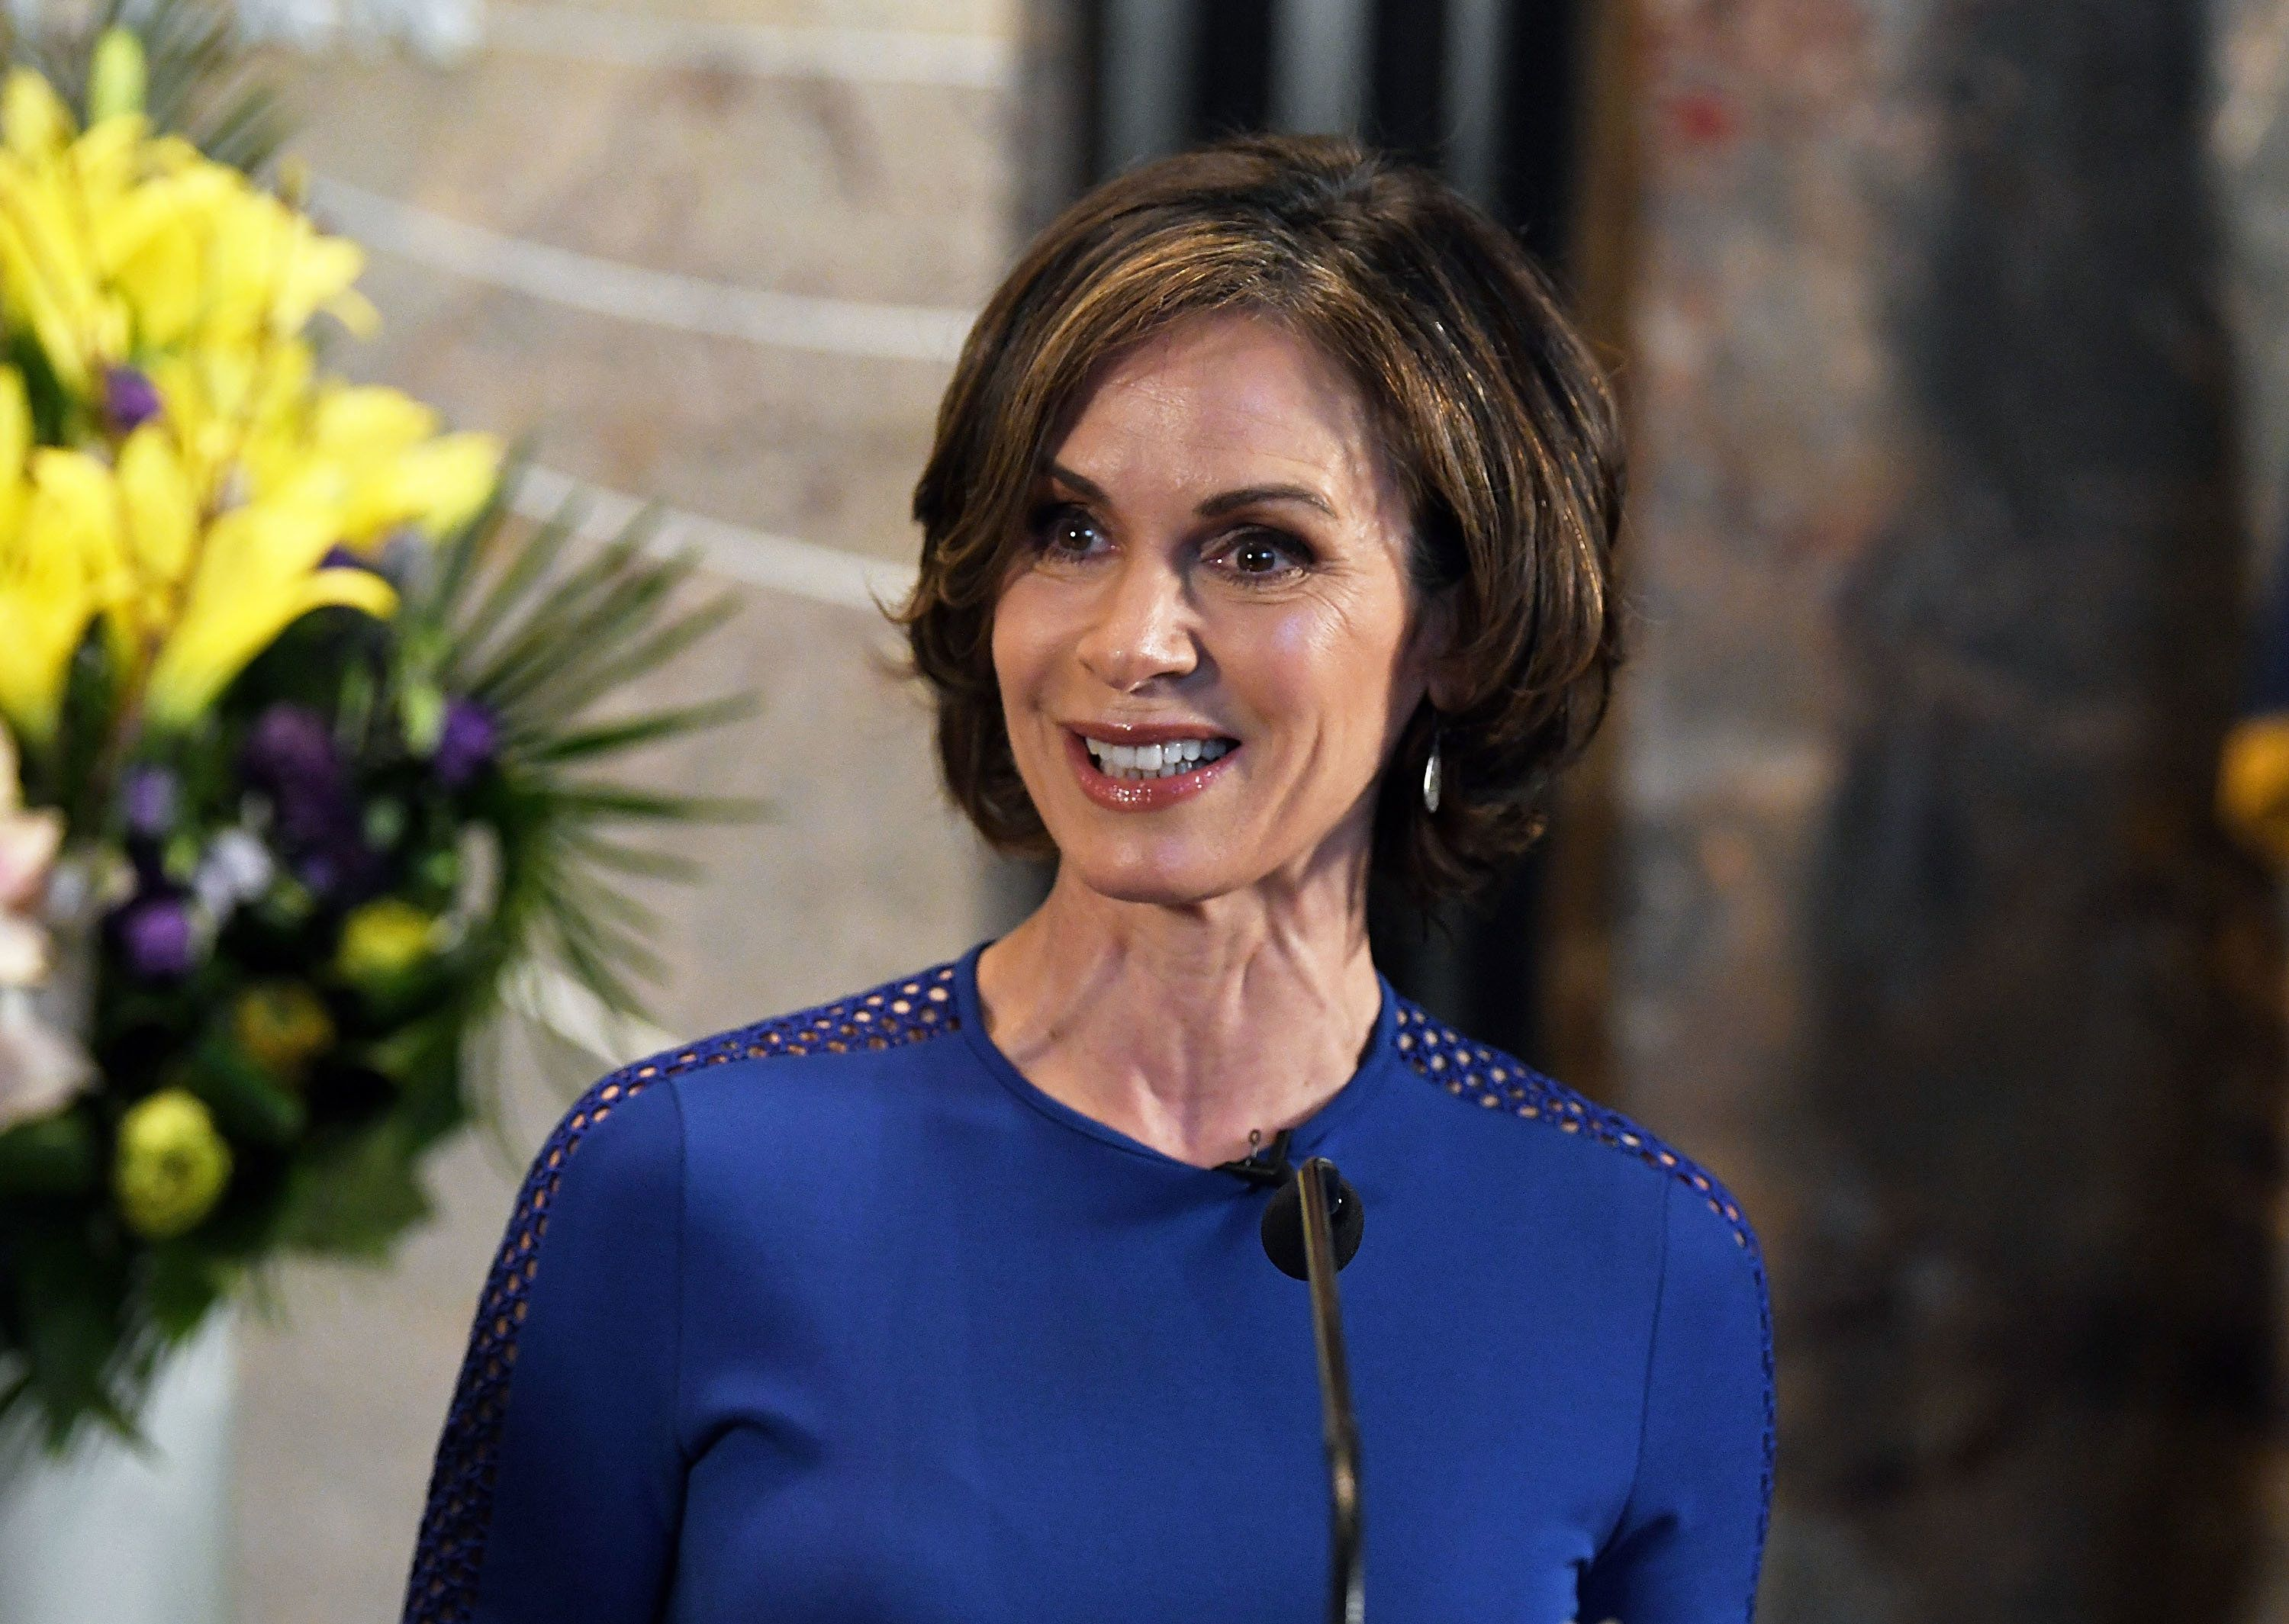 Elizabeth Vargas is leaving ABC News